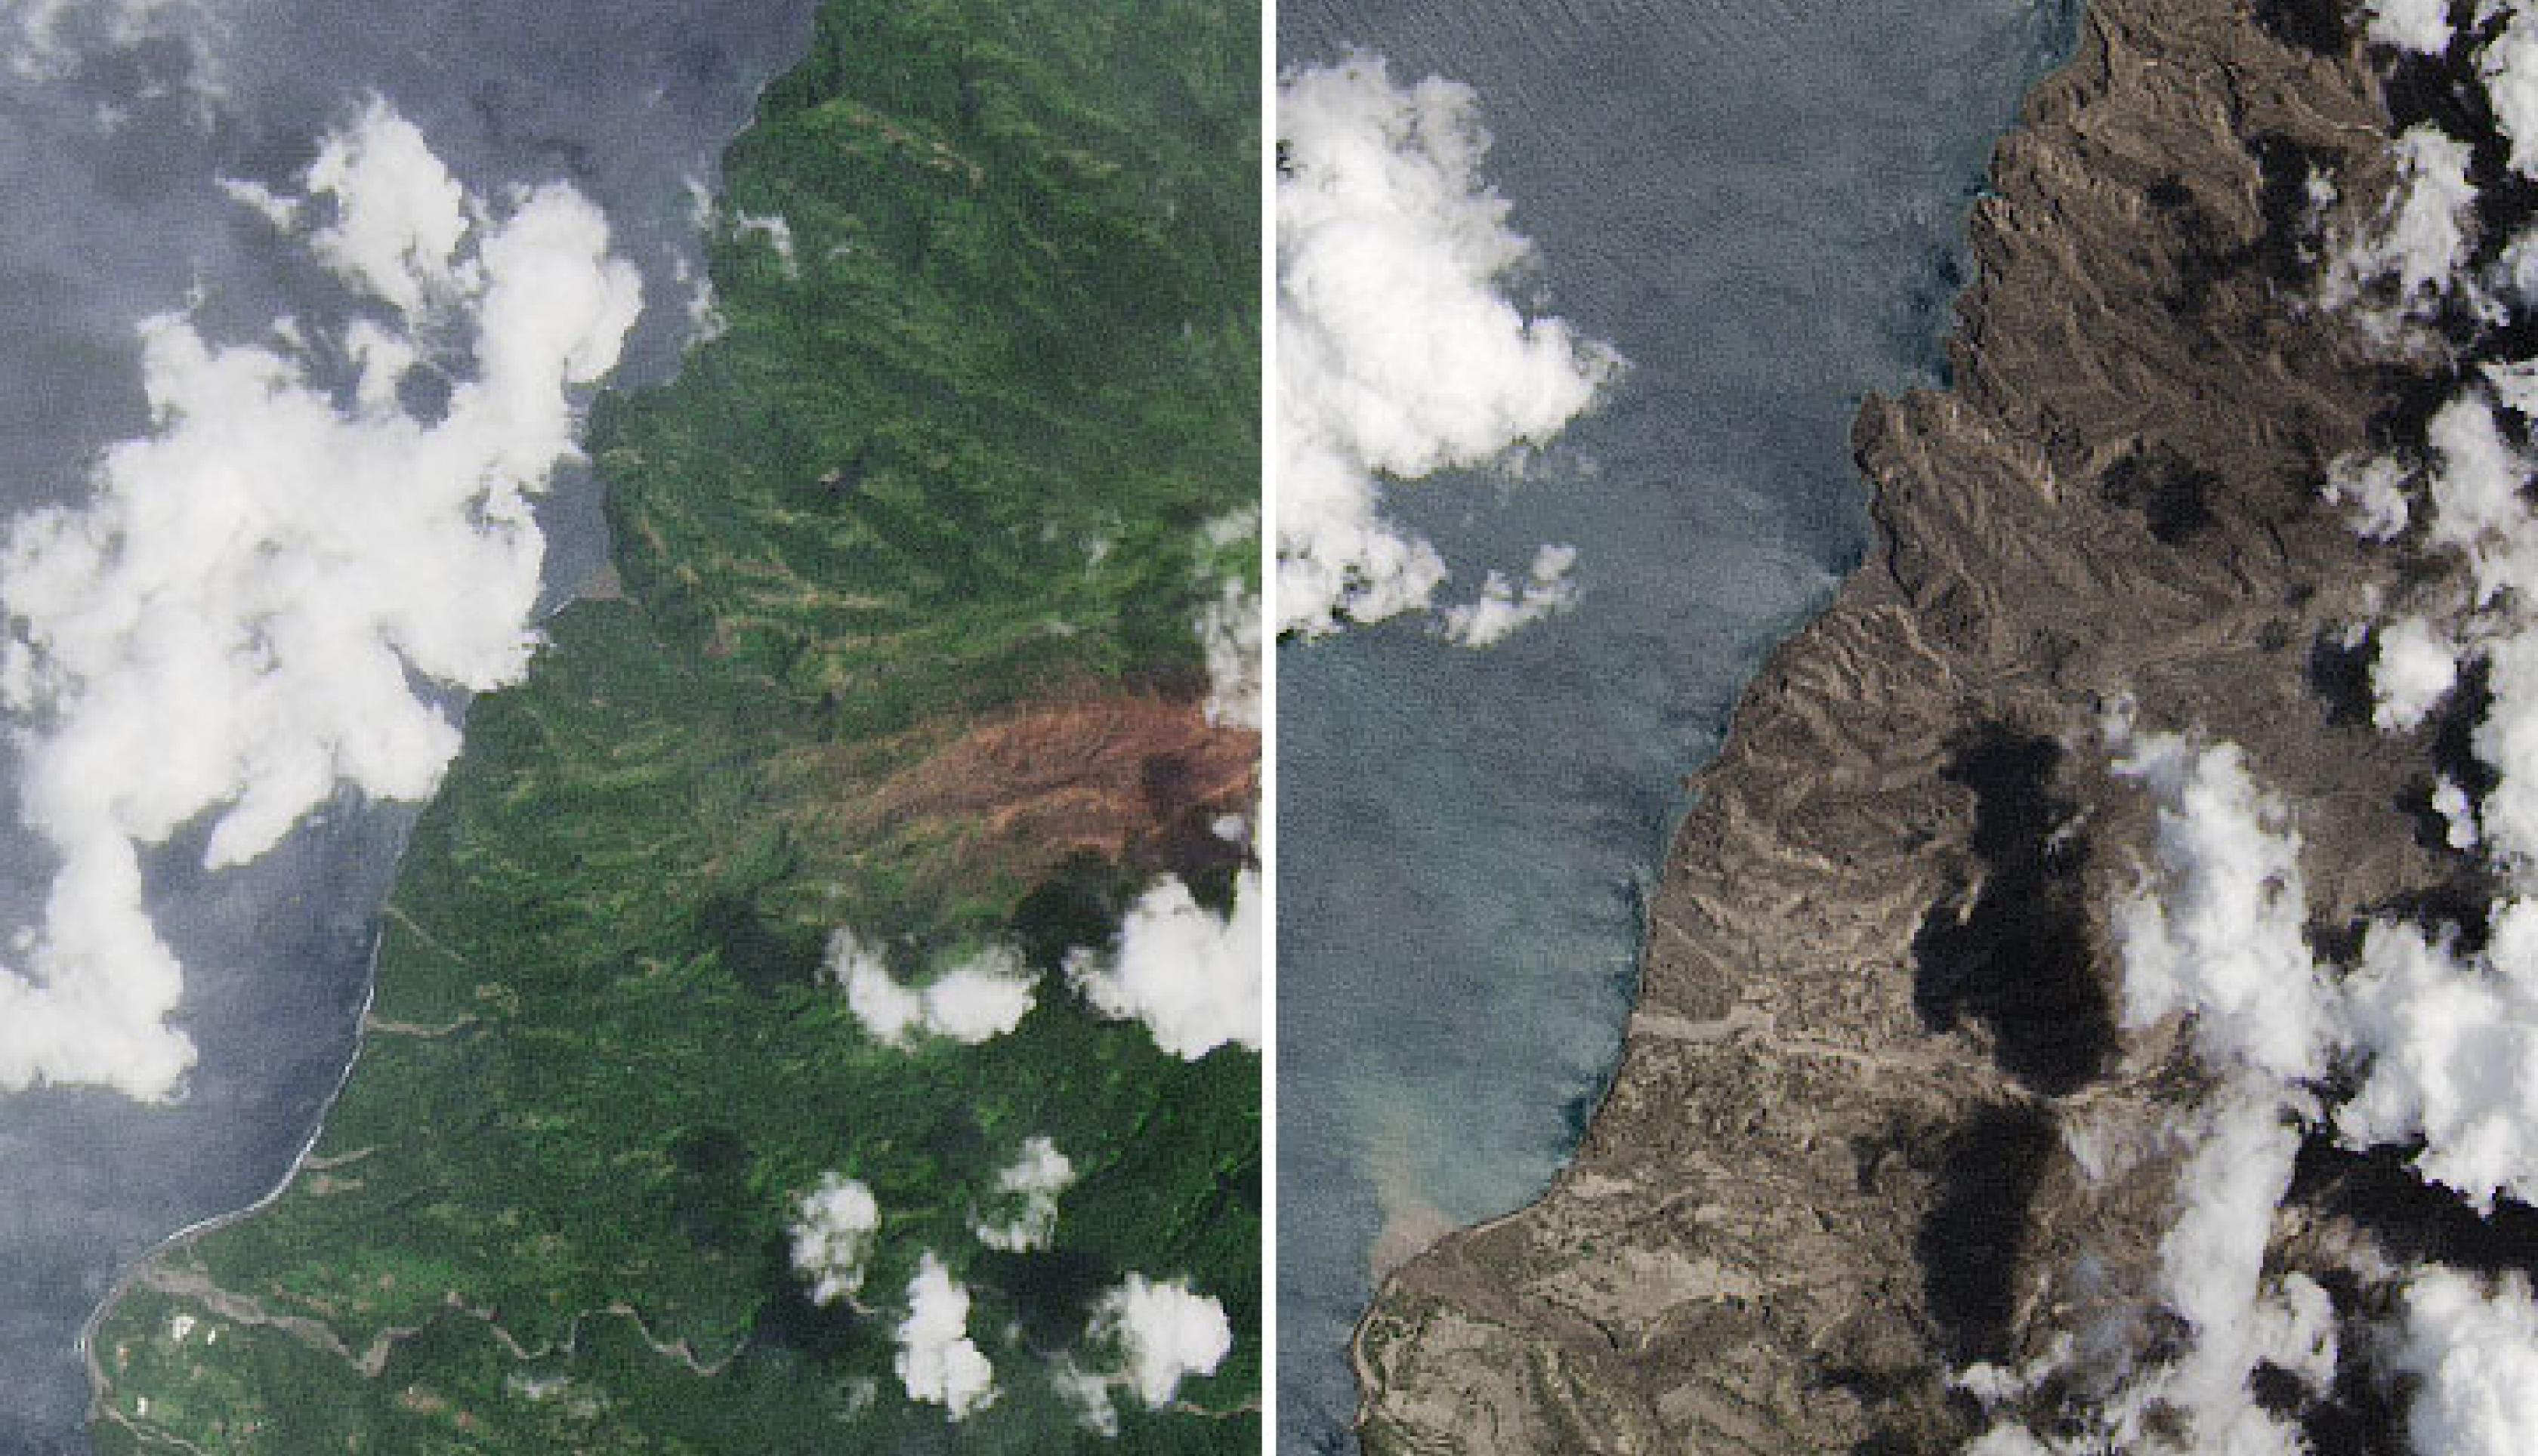 Images acquired by the Operational Land Imager (OLI) on Landsat 8, showing the northwestern part of the island before (March 24, 2021) and after (April 25, 2021) two weeks of powerful eruptions and ashfalls. Credits: NASA Earth Observatory